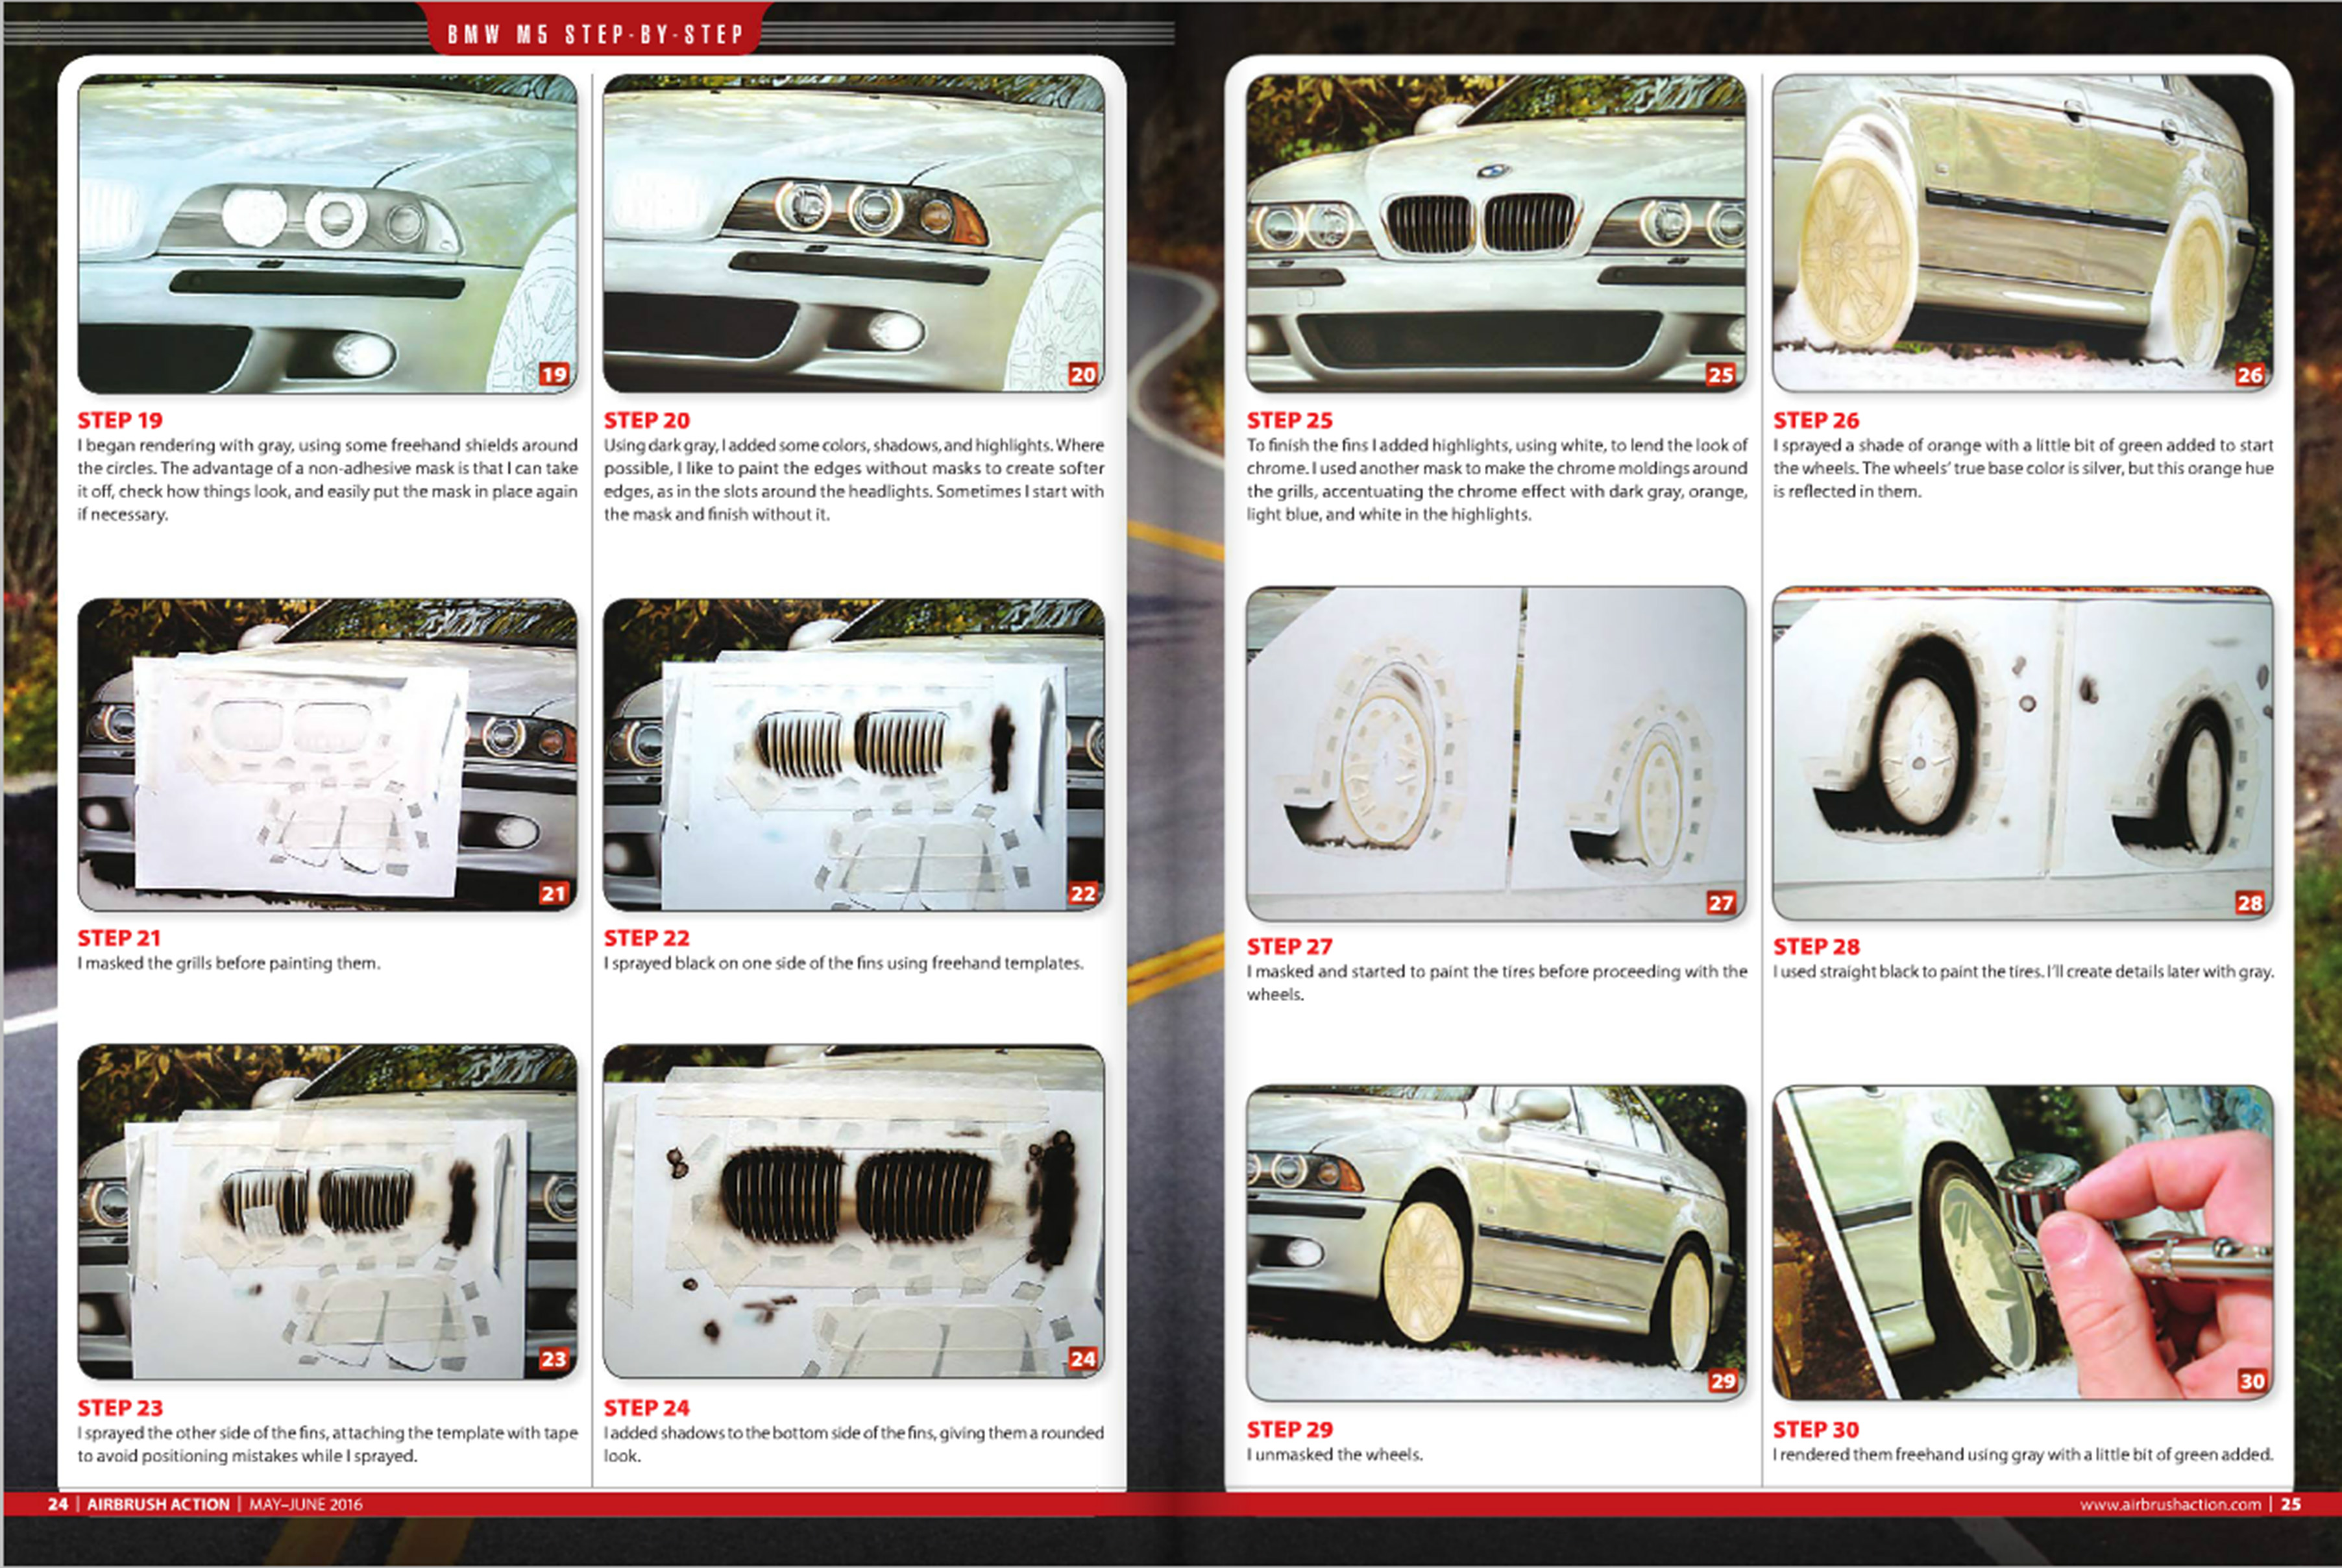 BMW page 5-6